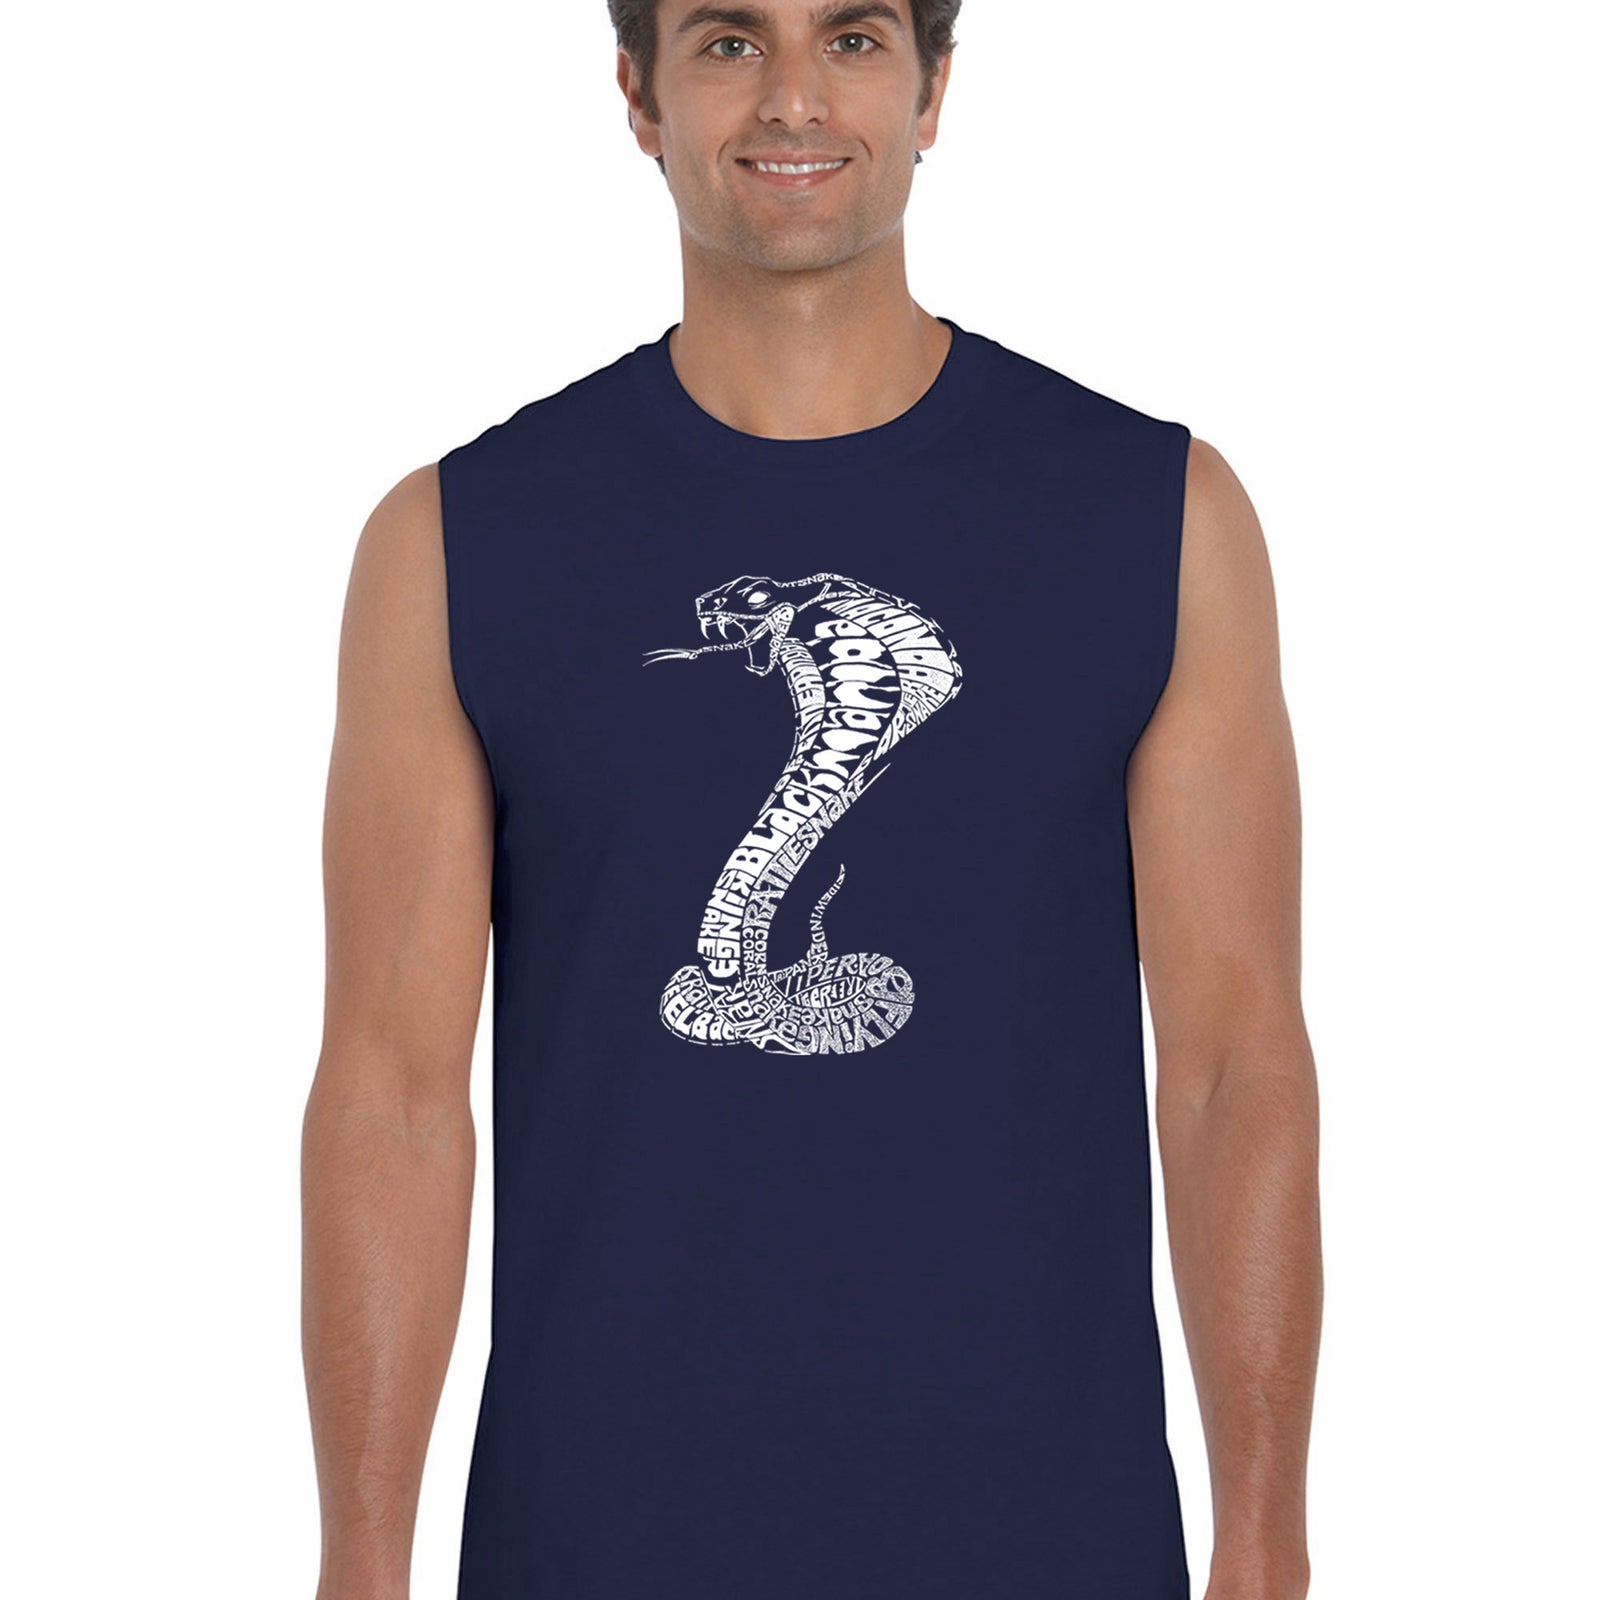 Men's Word Art Sleeveless T-shirt - Tyles of Snakes